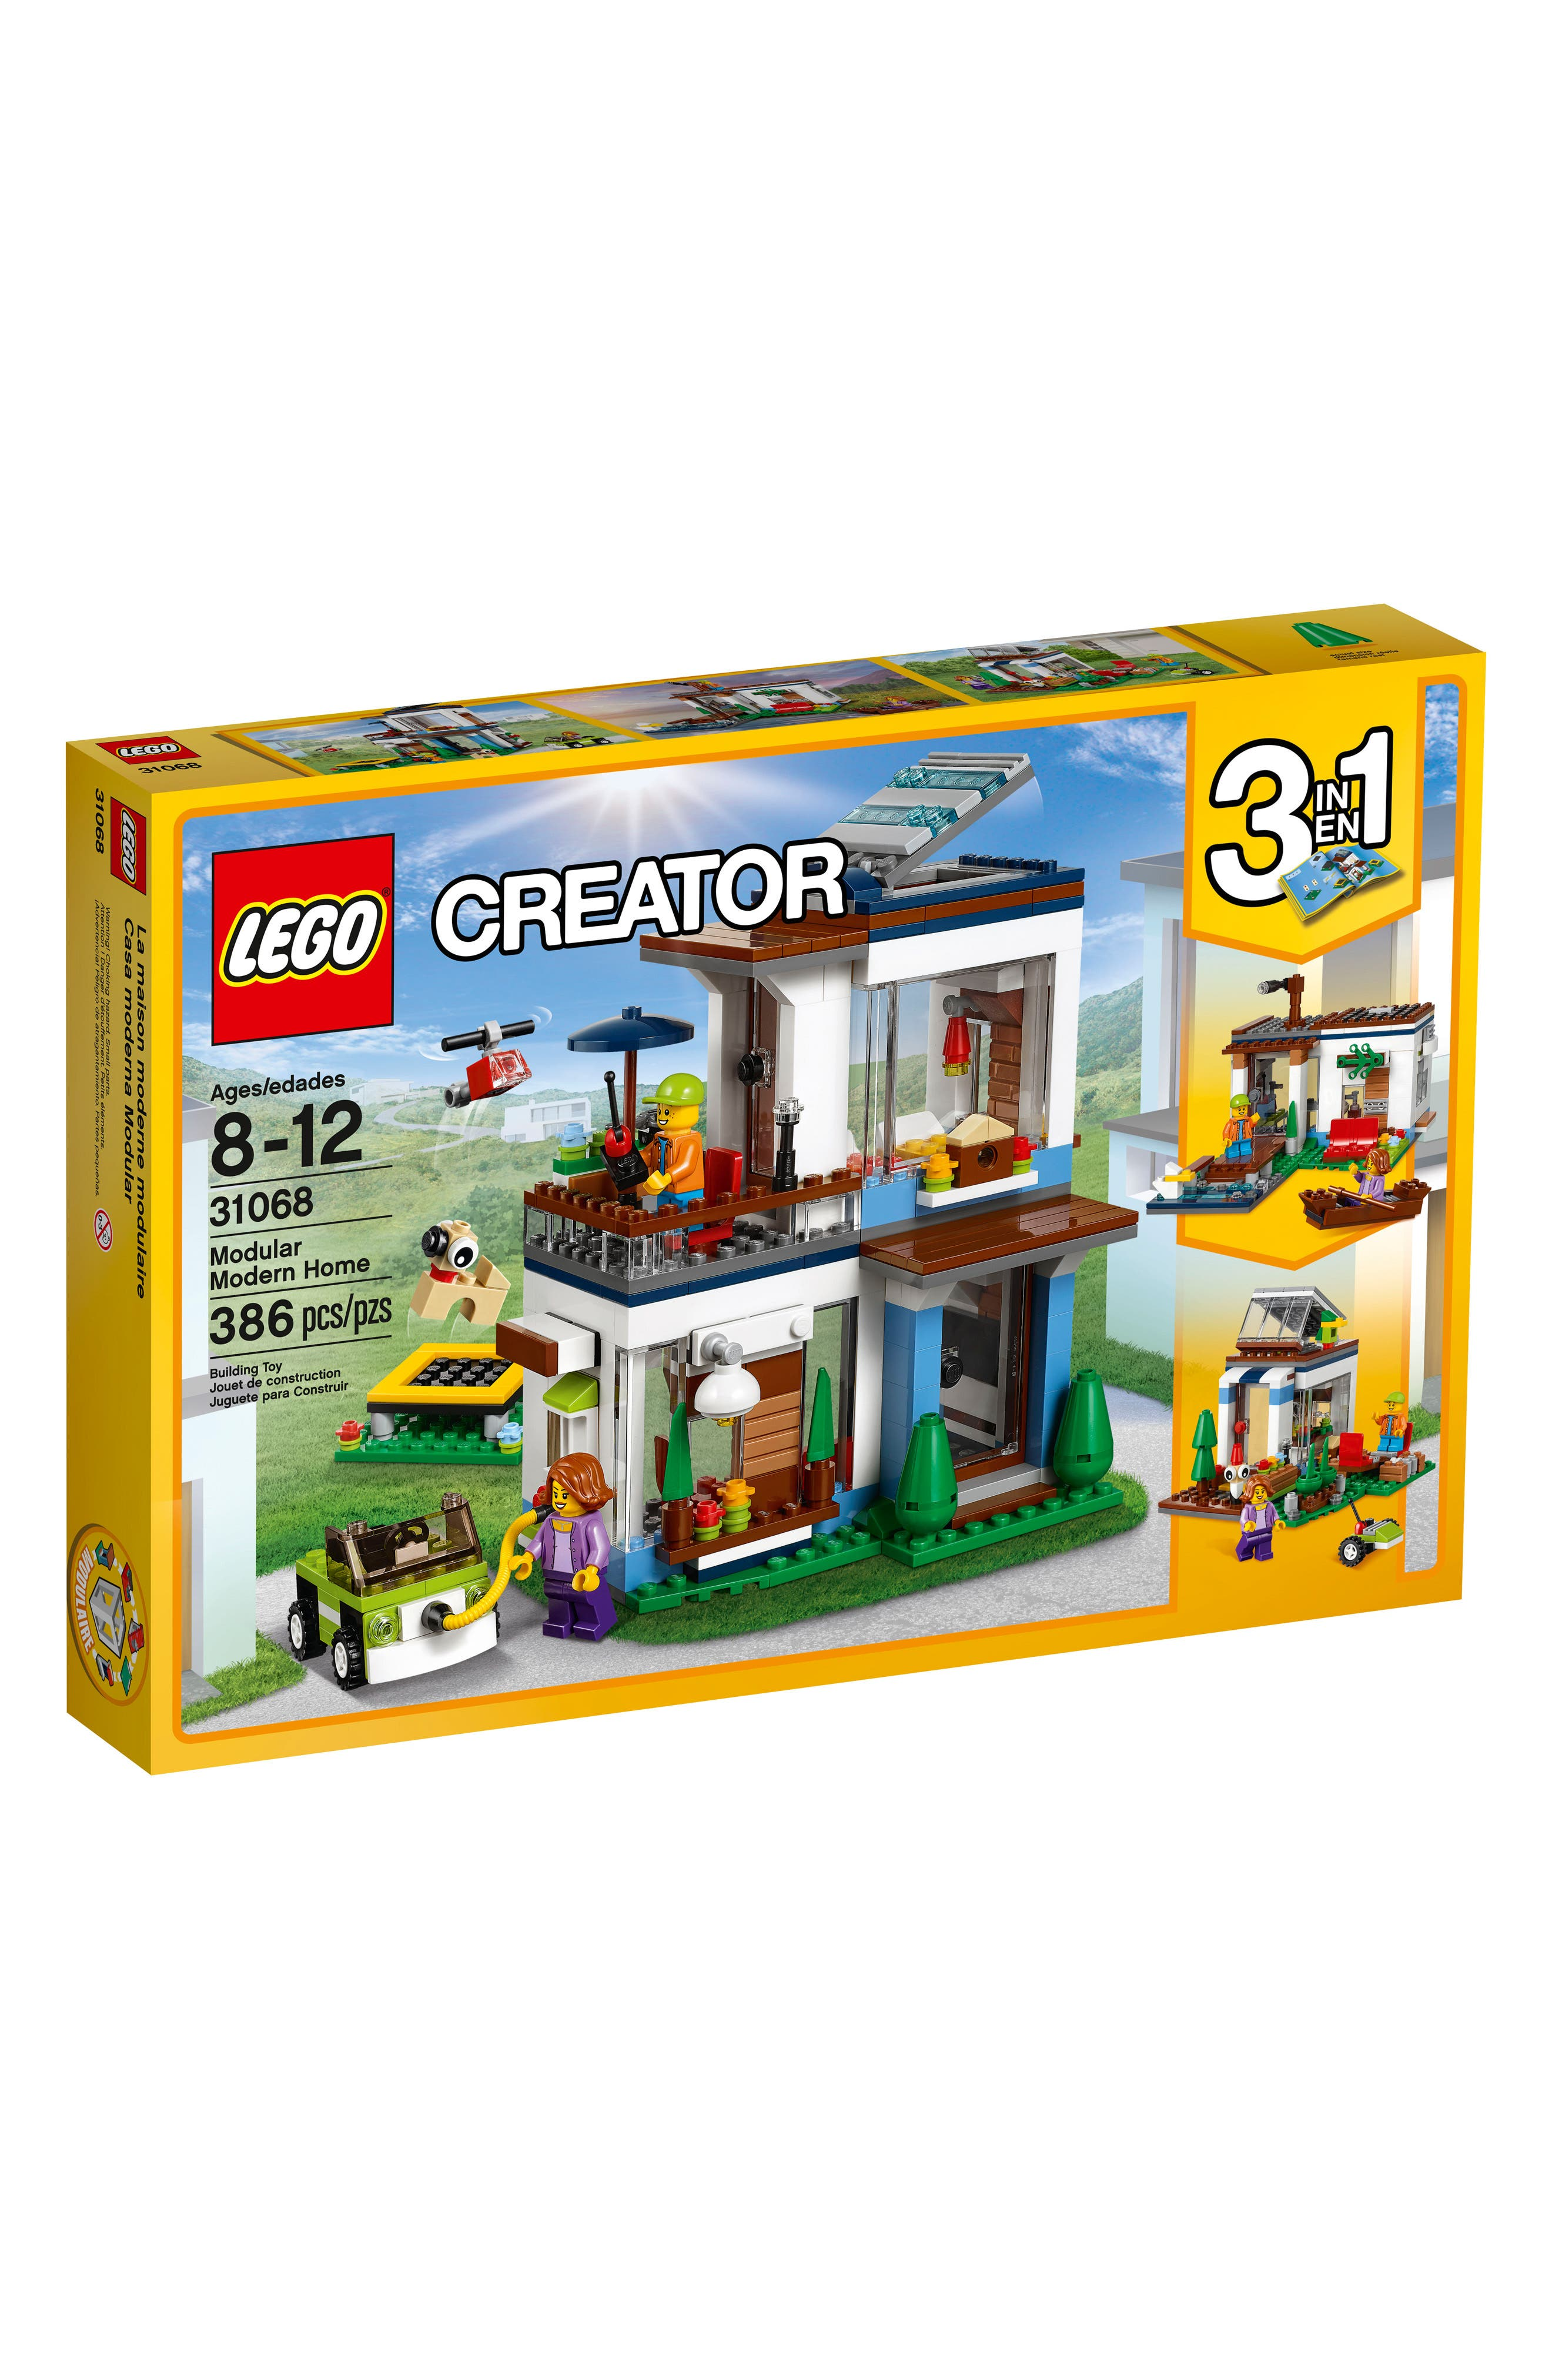 Creator 3-in-1 Modular Modern Home Play Set - 31068,                         Main,                         color, Multi